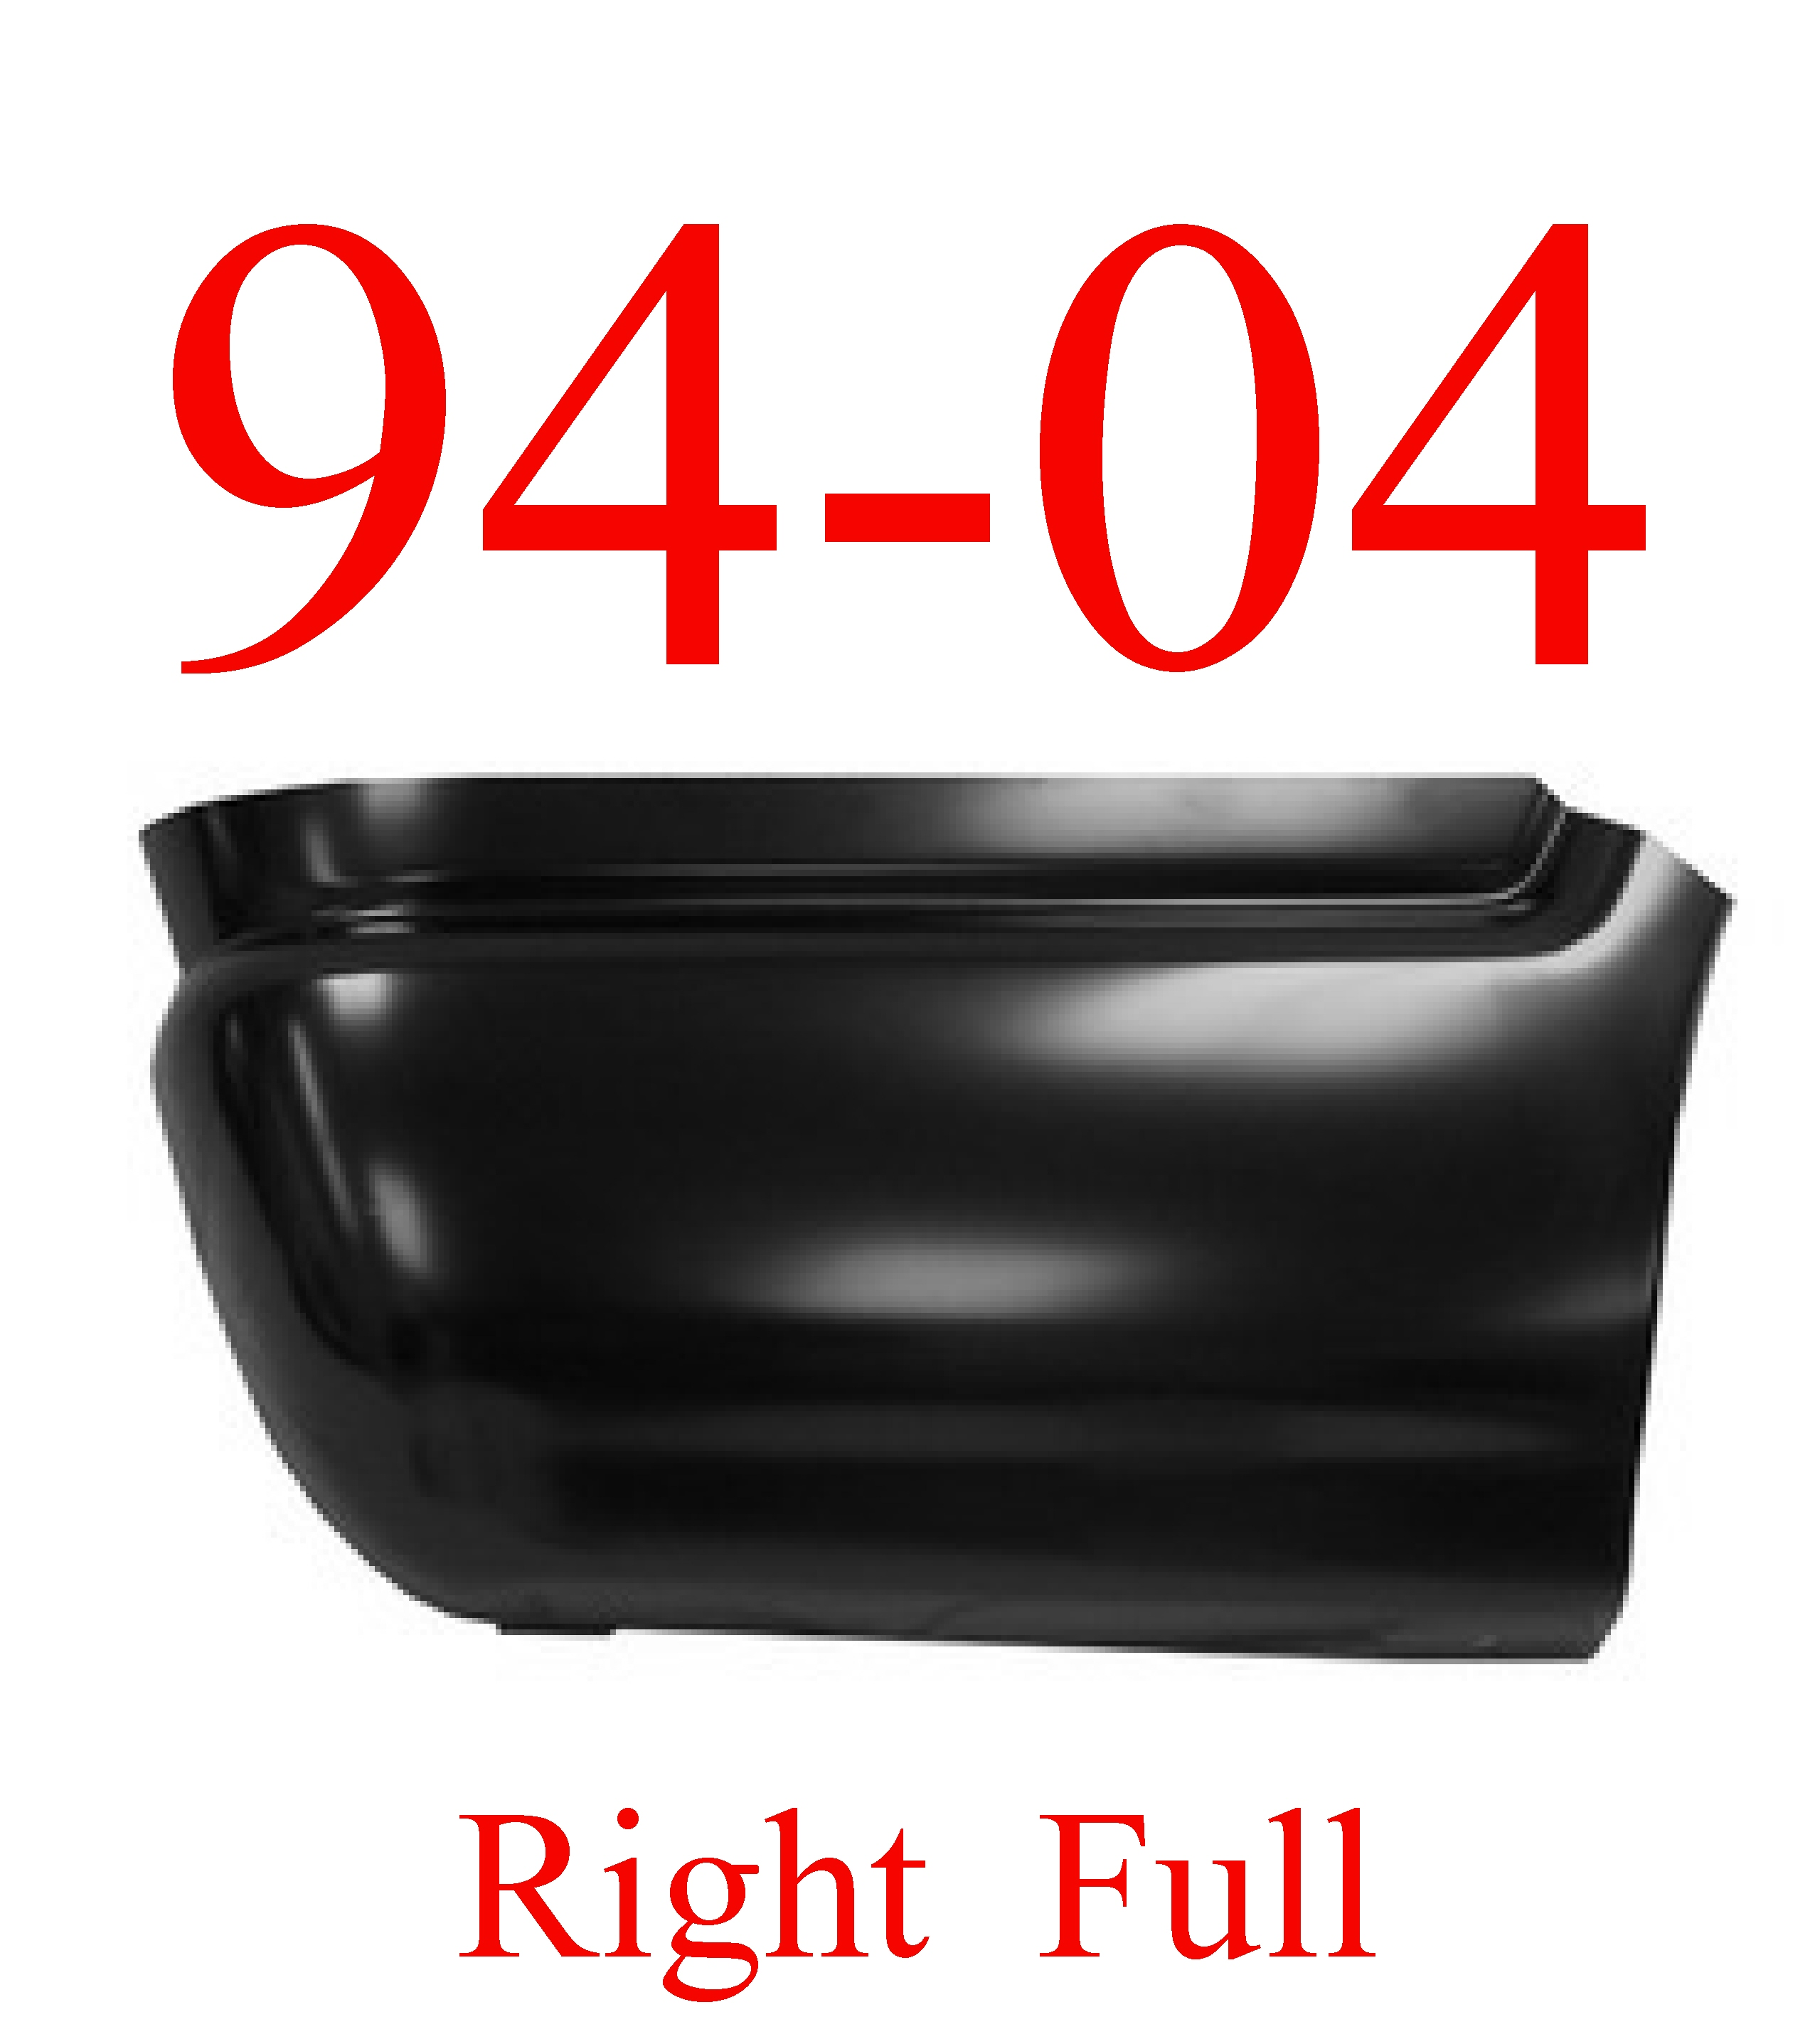 94 04 S10 RIGHT Lower Rear Bed Patch